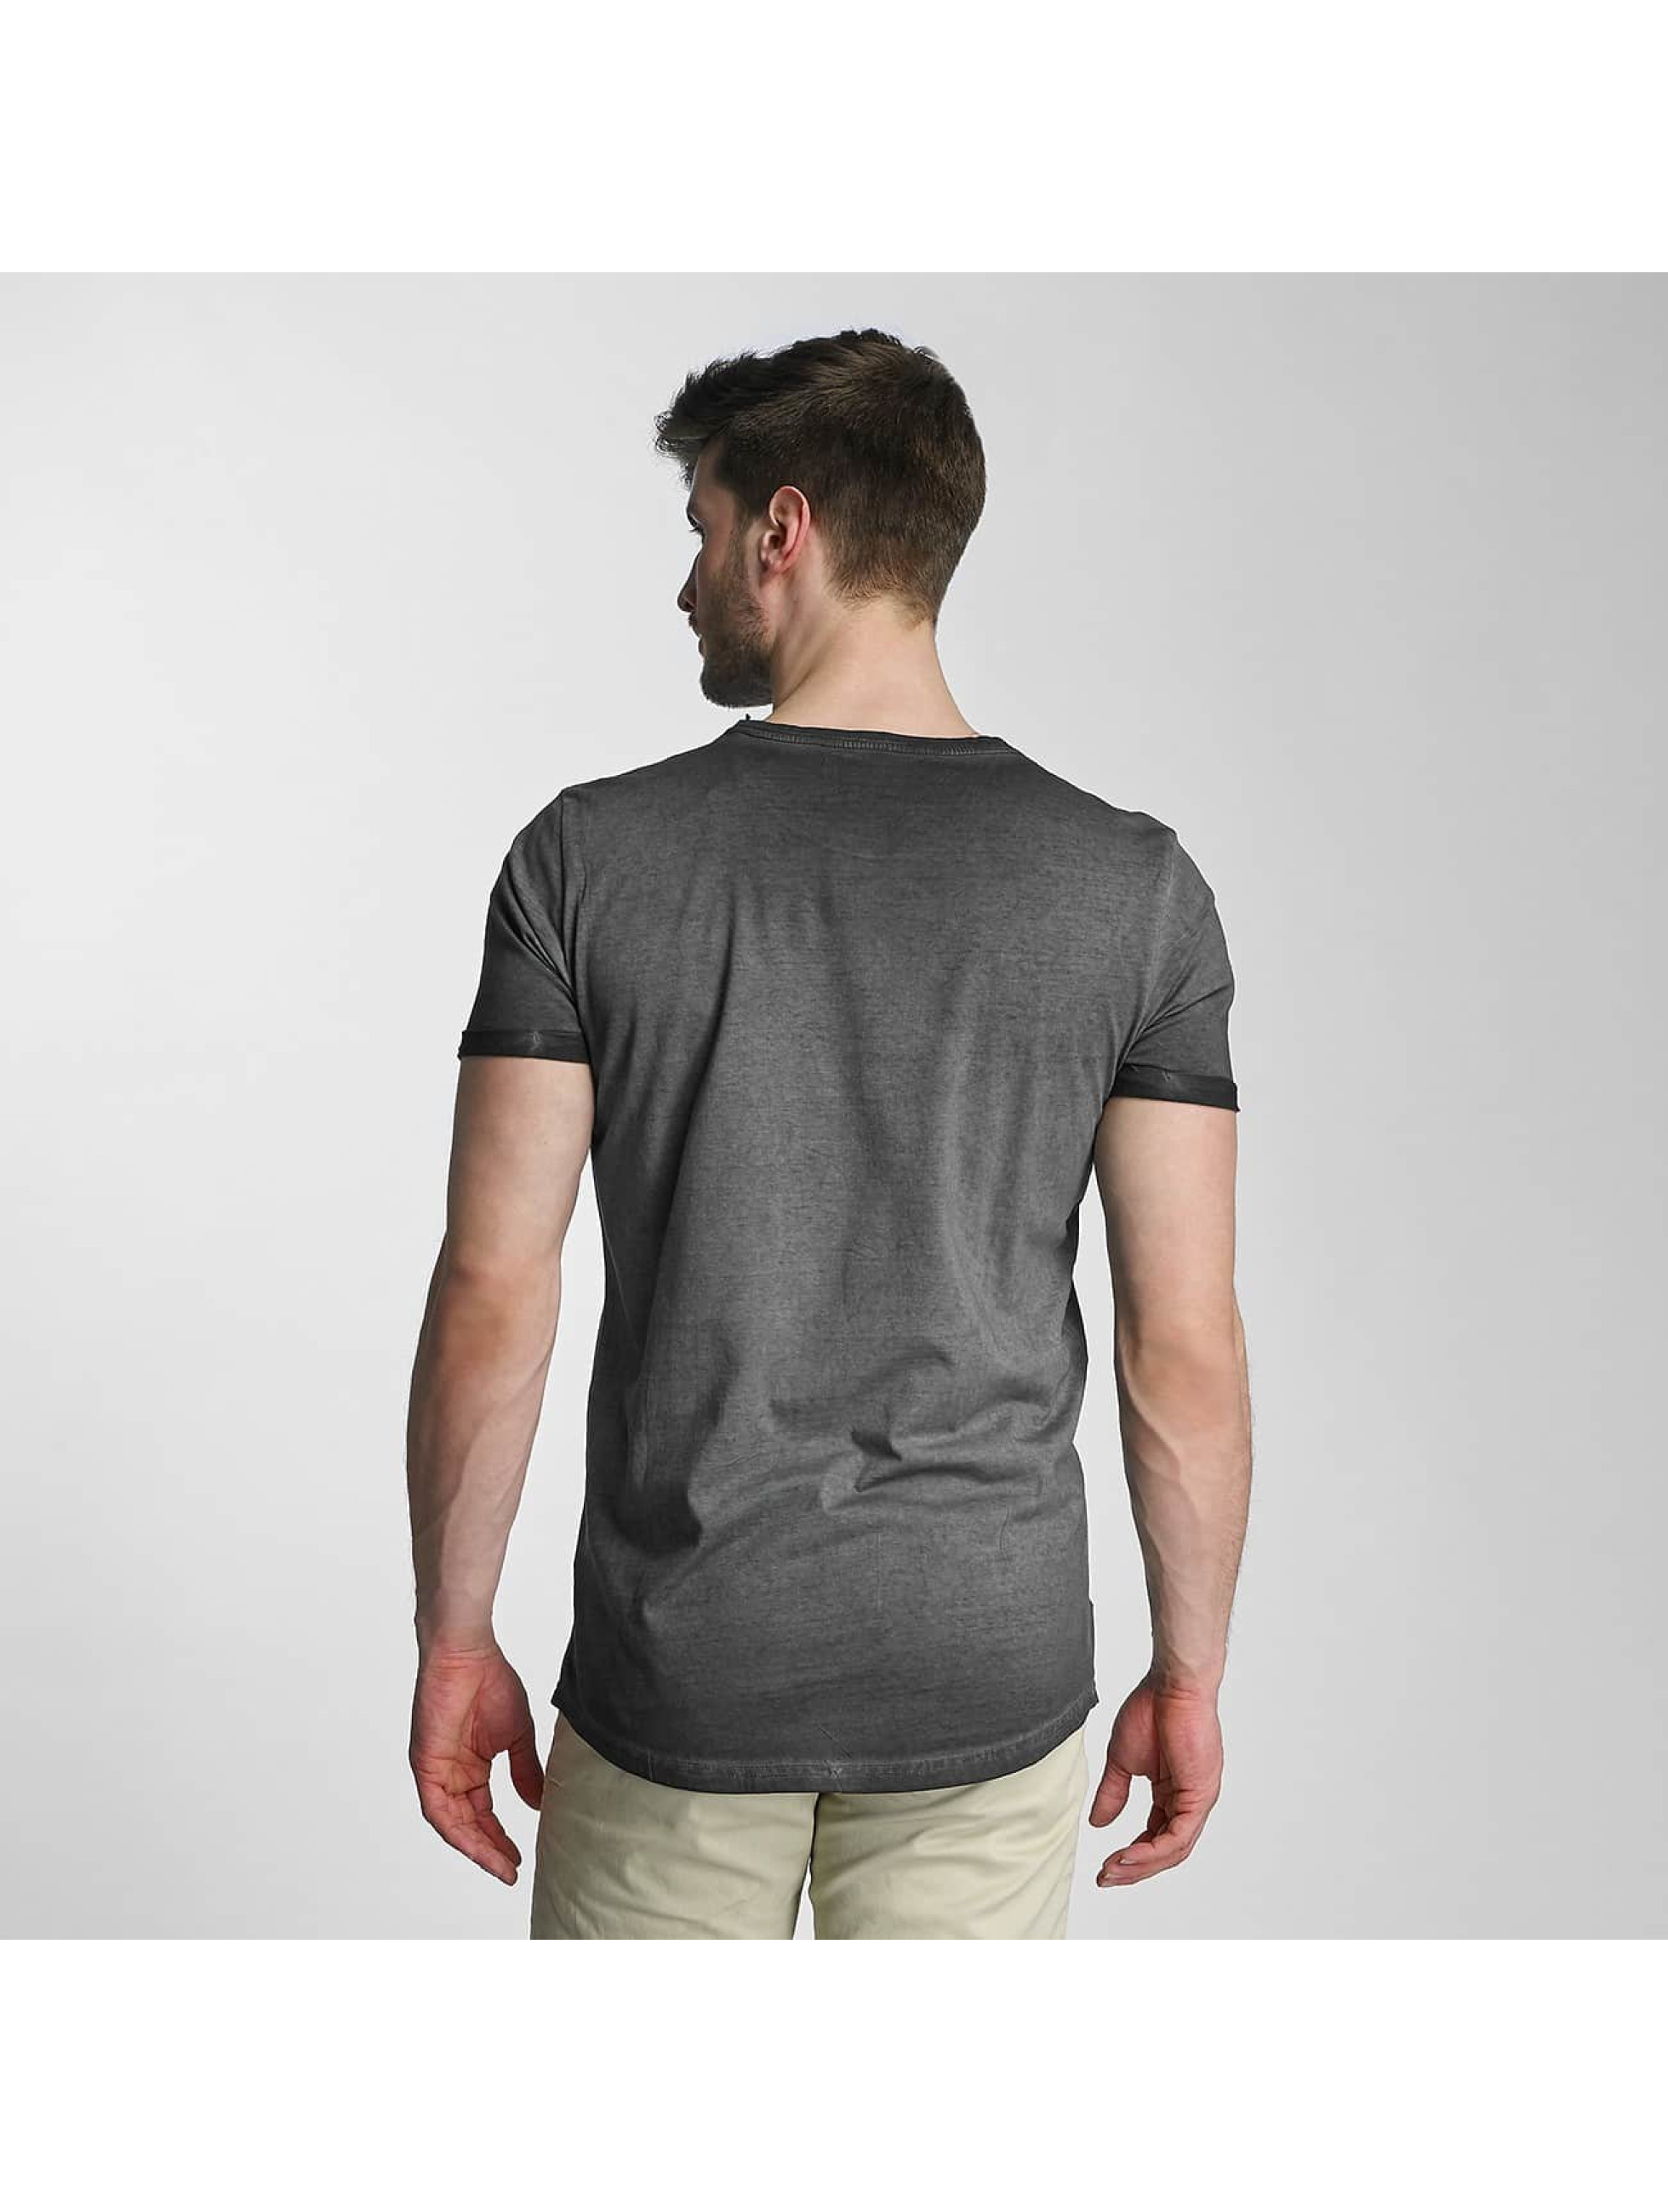 SHINE Original Camiseta Dirt Dye Wash negro